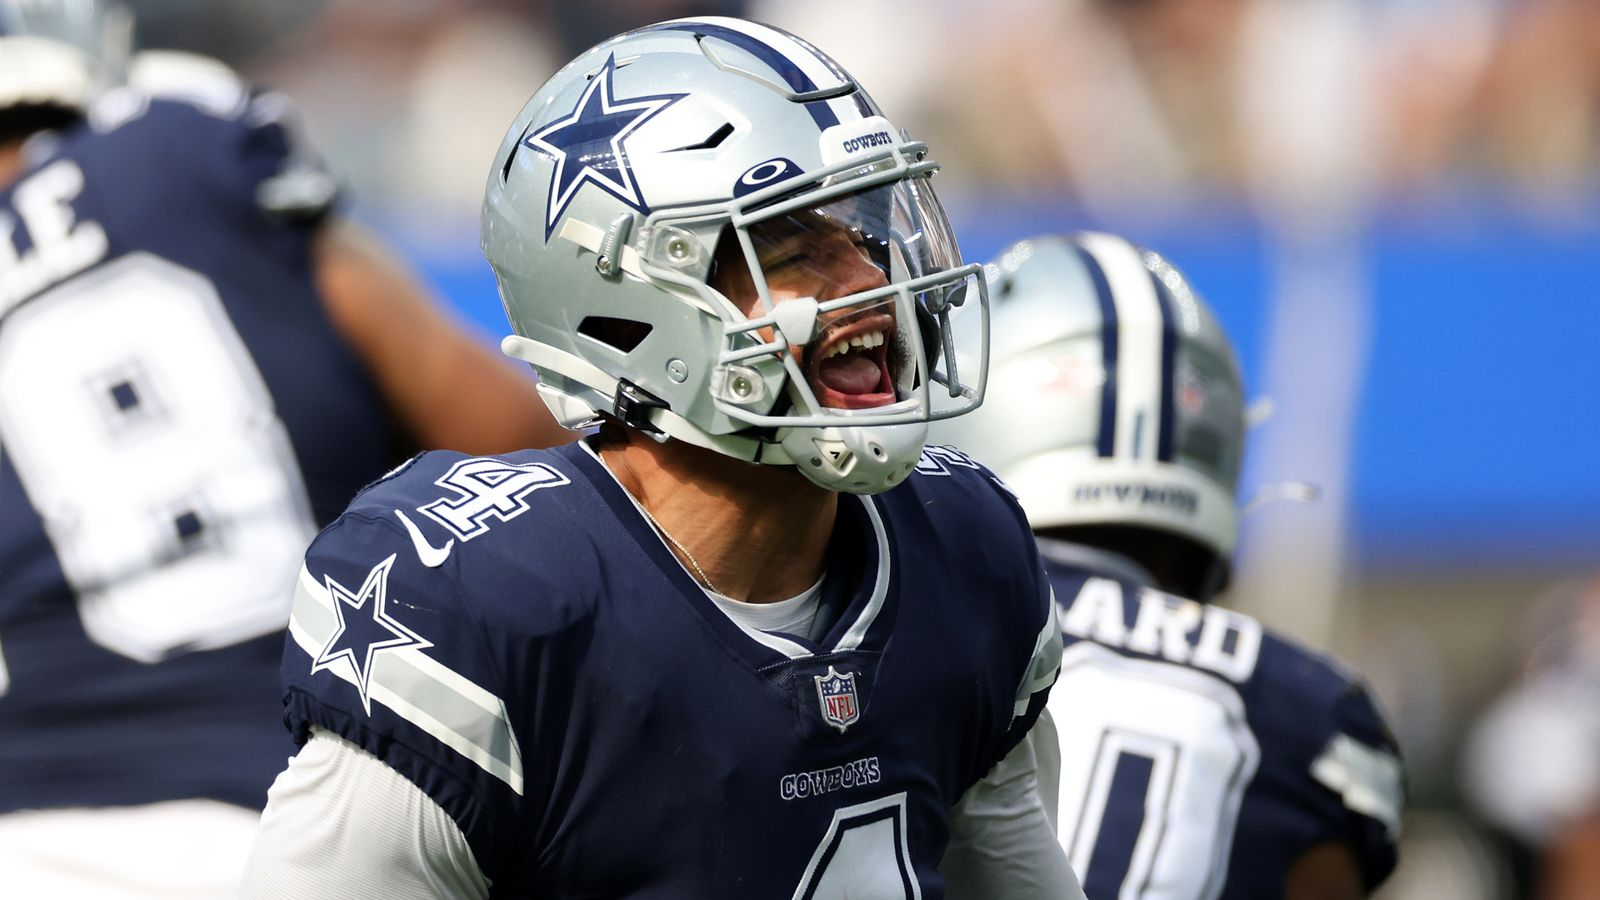 Dallas Cowboys 20-17 Los Angeles Chargers: Greg Zuerlein kicks game-winning field goal as time expires